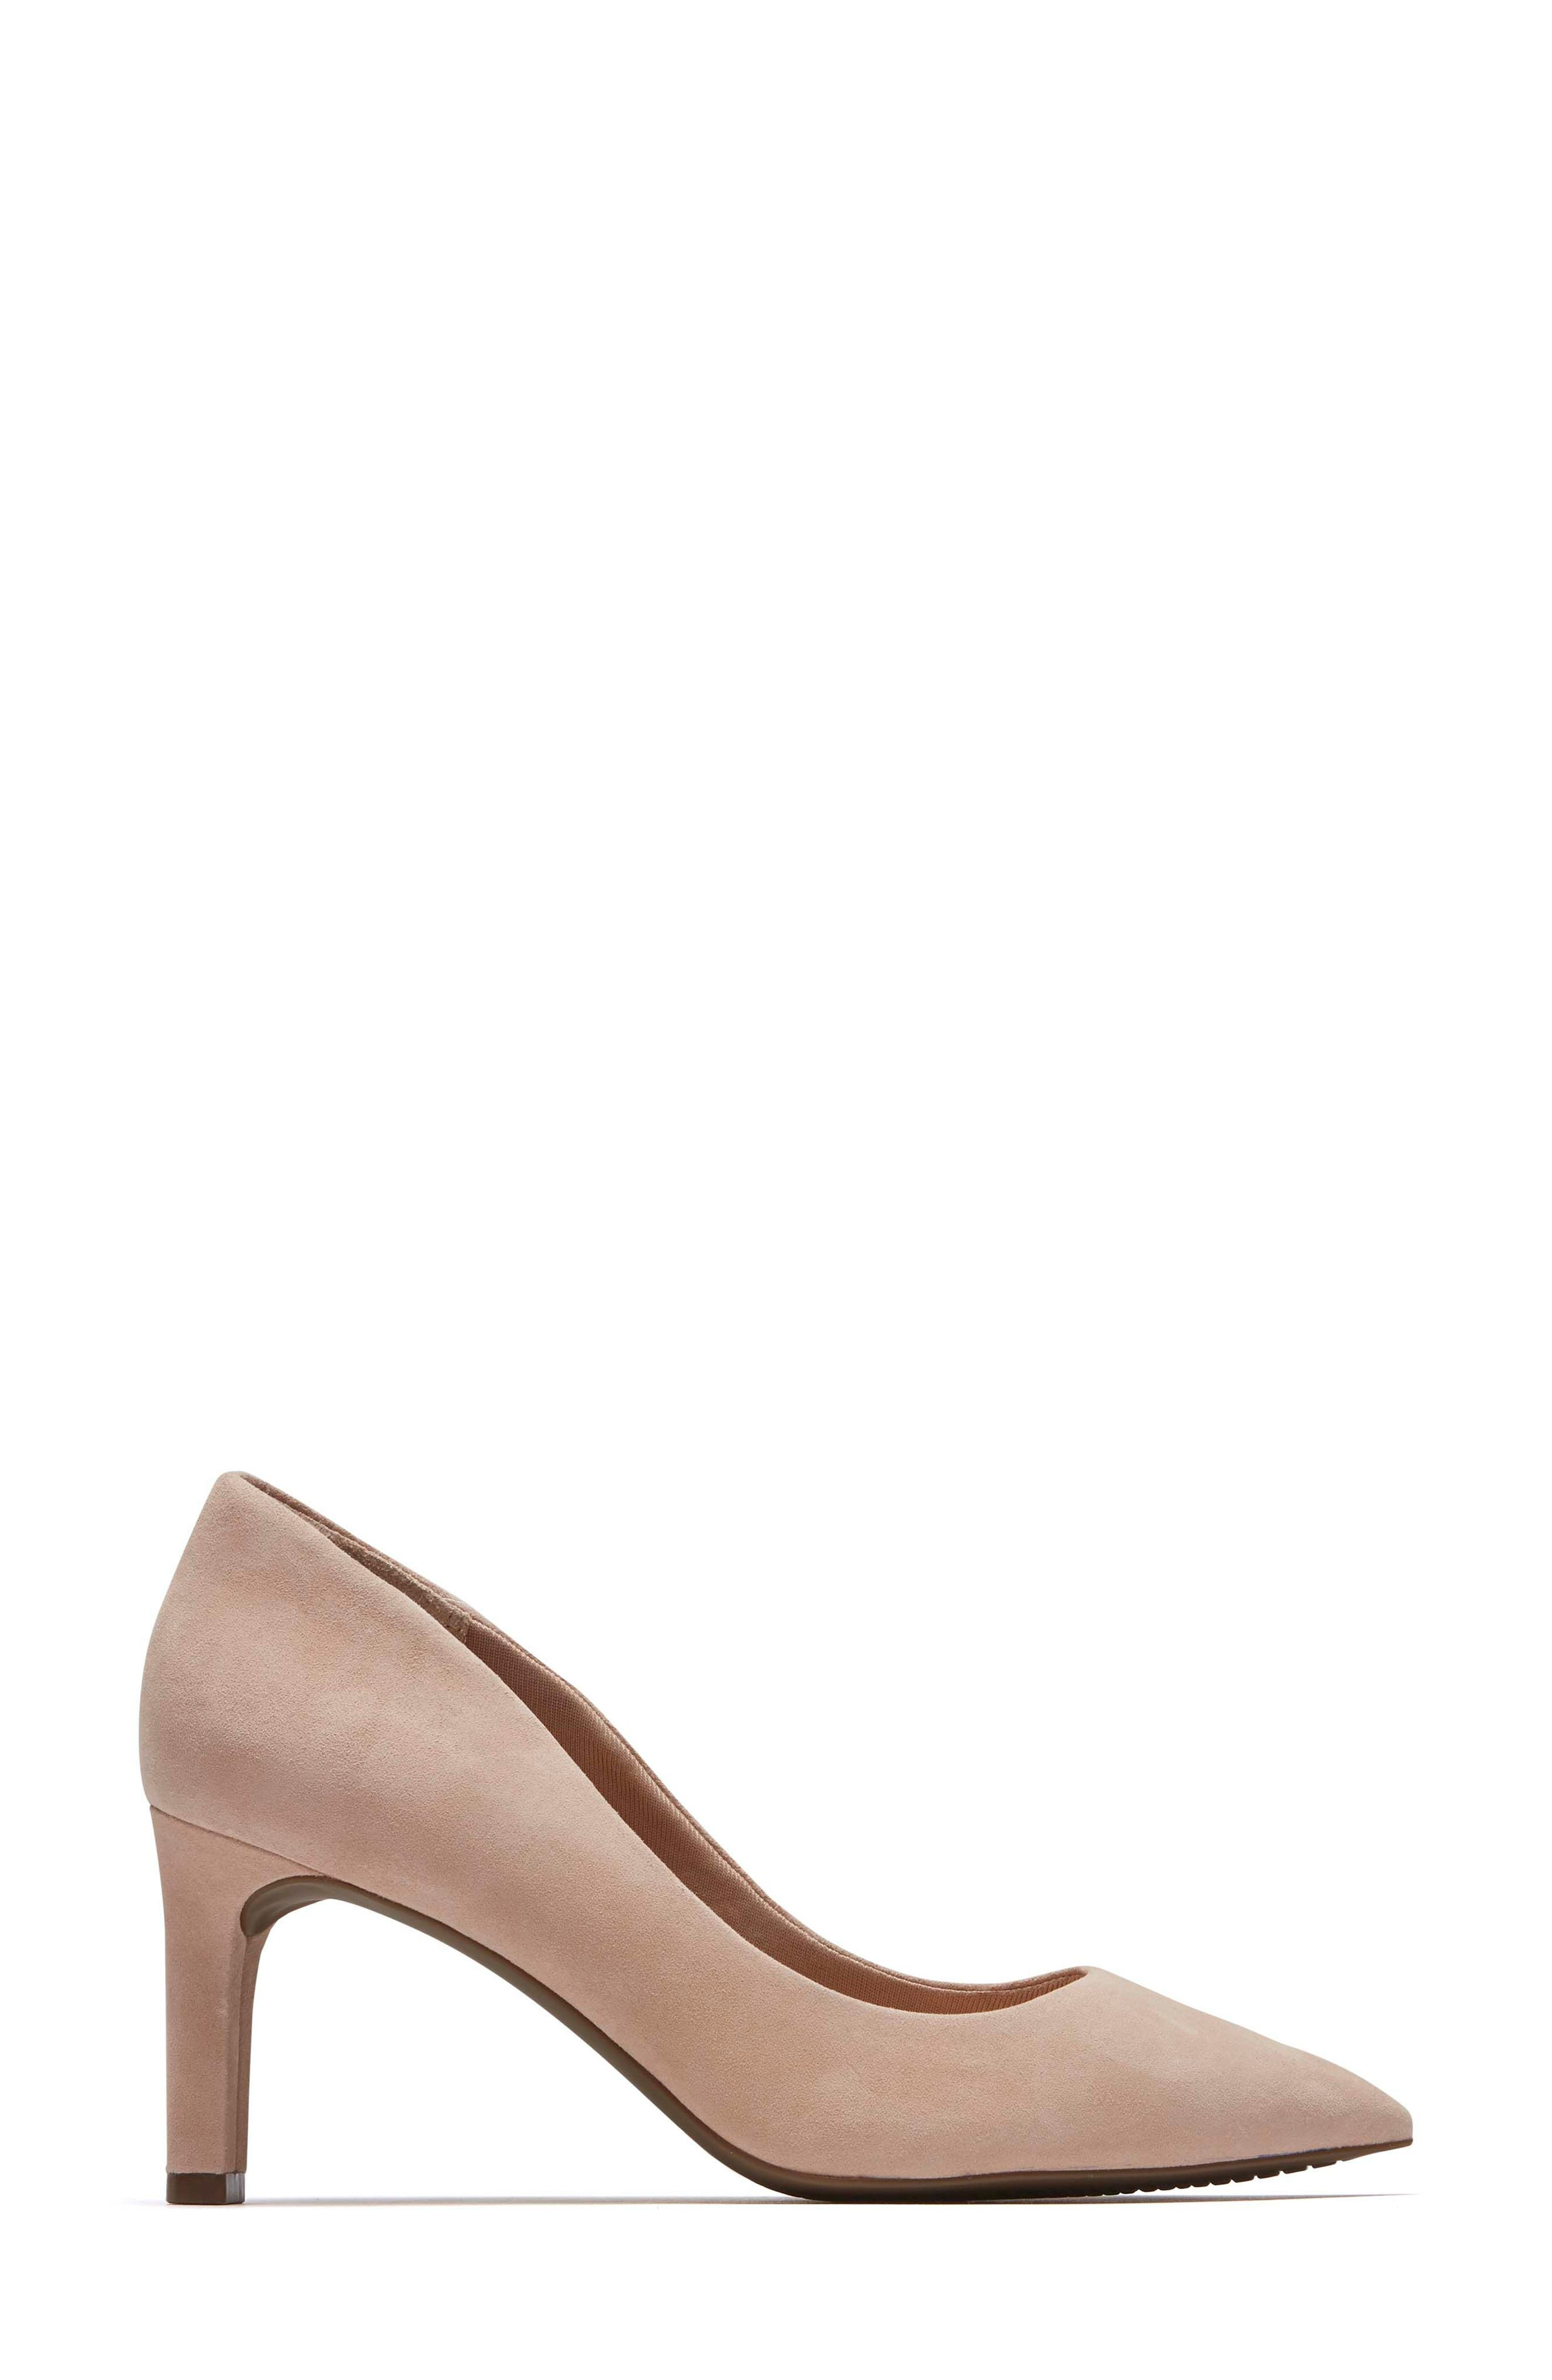 ROCKPORT, Total Motion Luxe Valerie Pump, Alternate thumbnail 3, color, BLUSH SUEDE